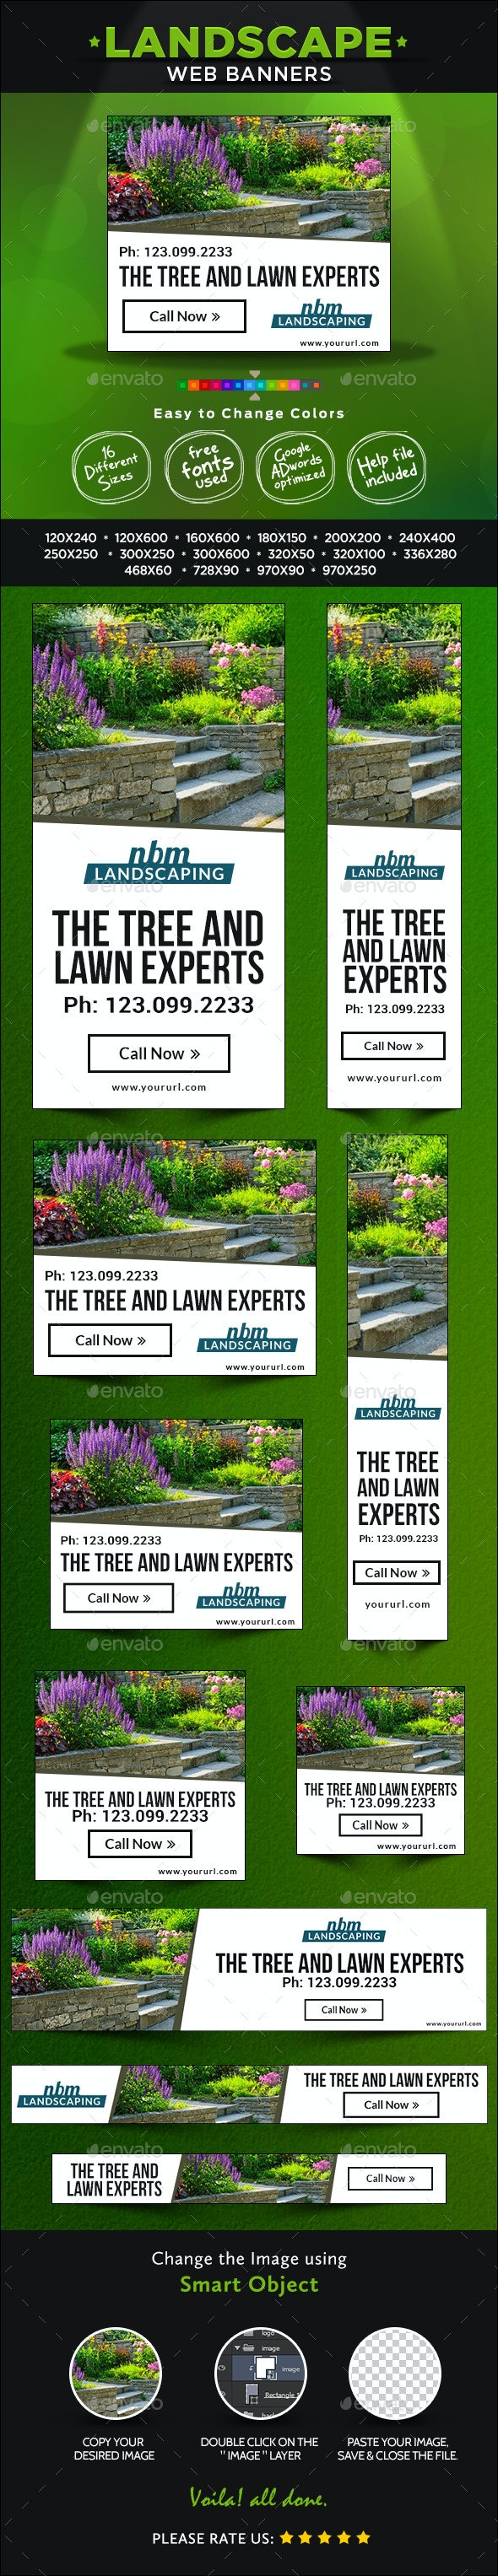 Landscaping Company Banner Design Set - Banners & Ads Web Elements